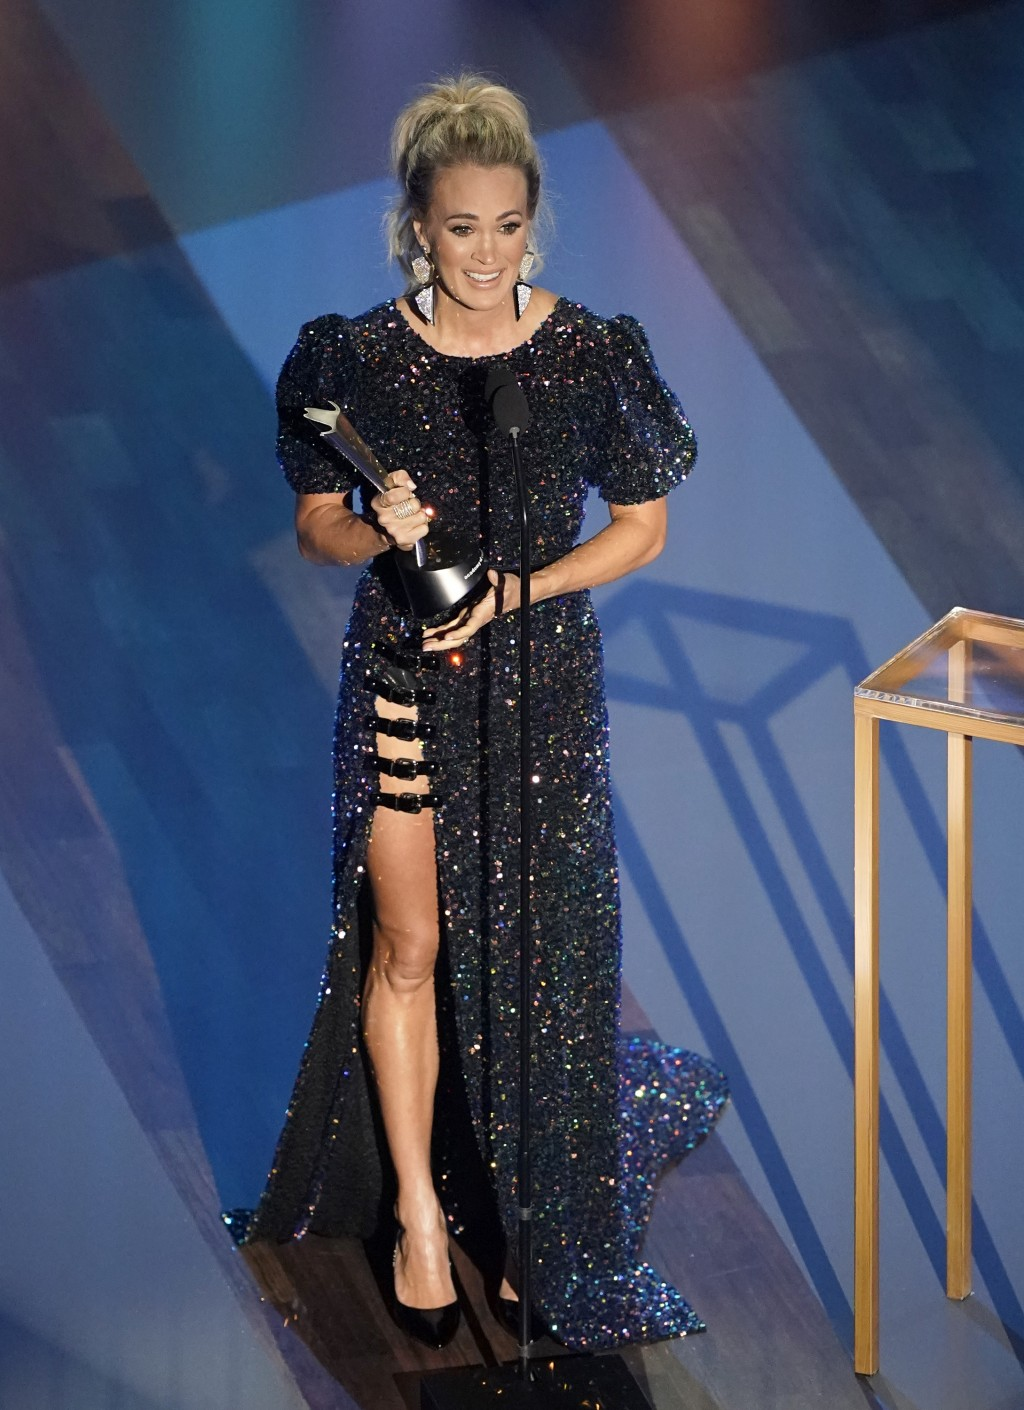 Carrie Underwood accepts the entertainer of the year award in a tie with Thomas Rhett during the 55th annual Academy of Country Music Awards at the Gr...